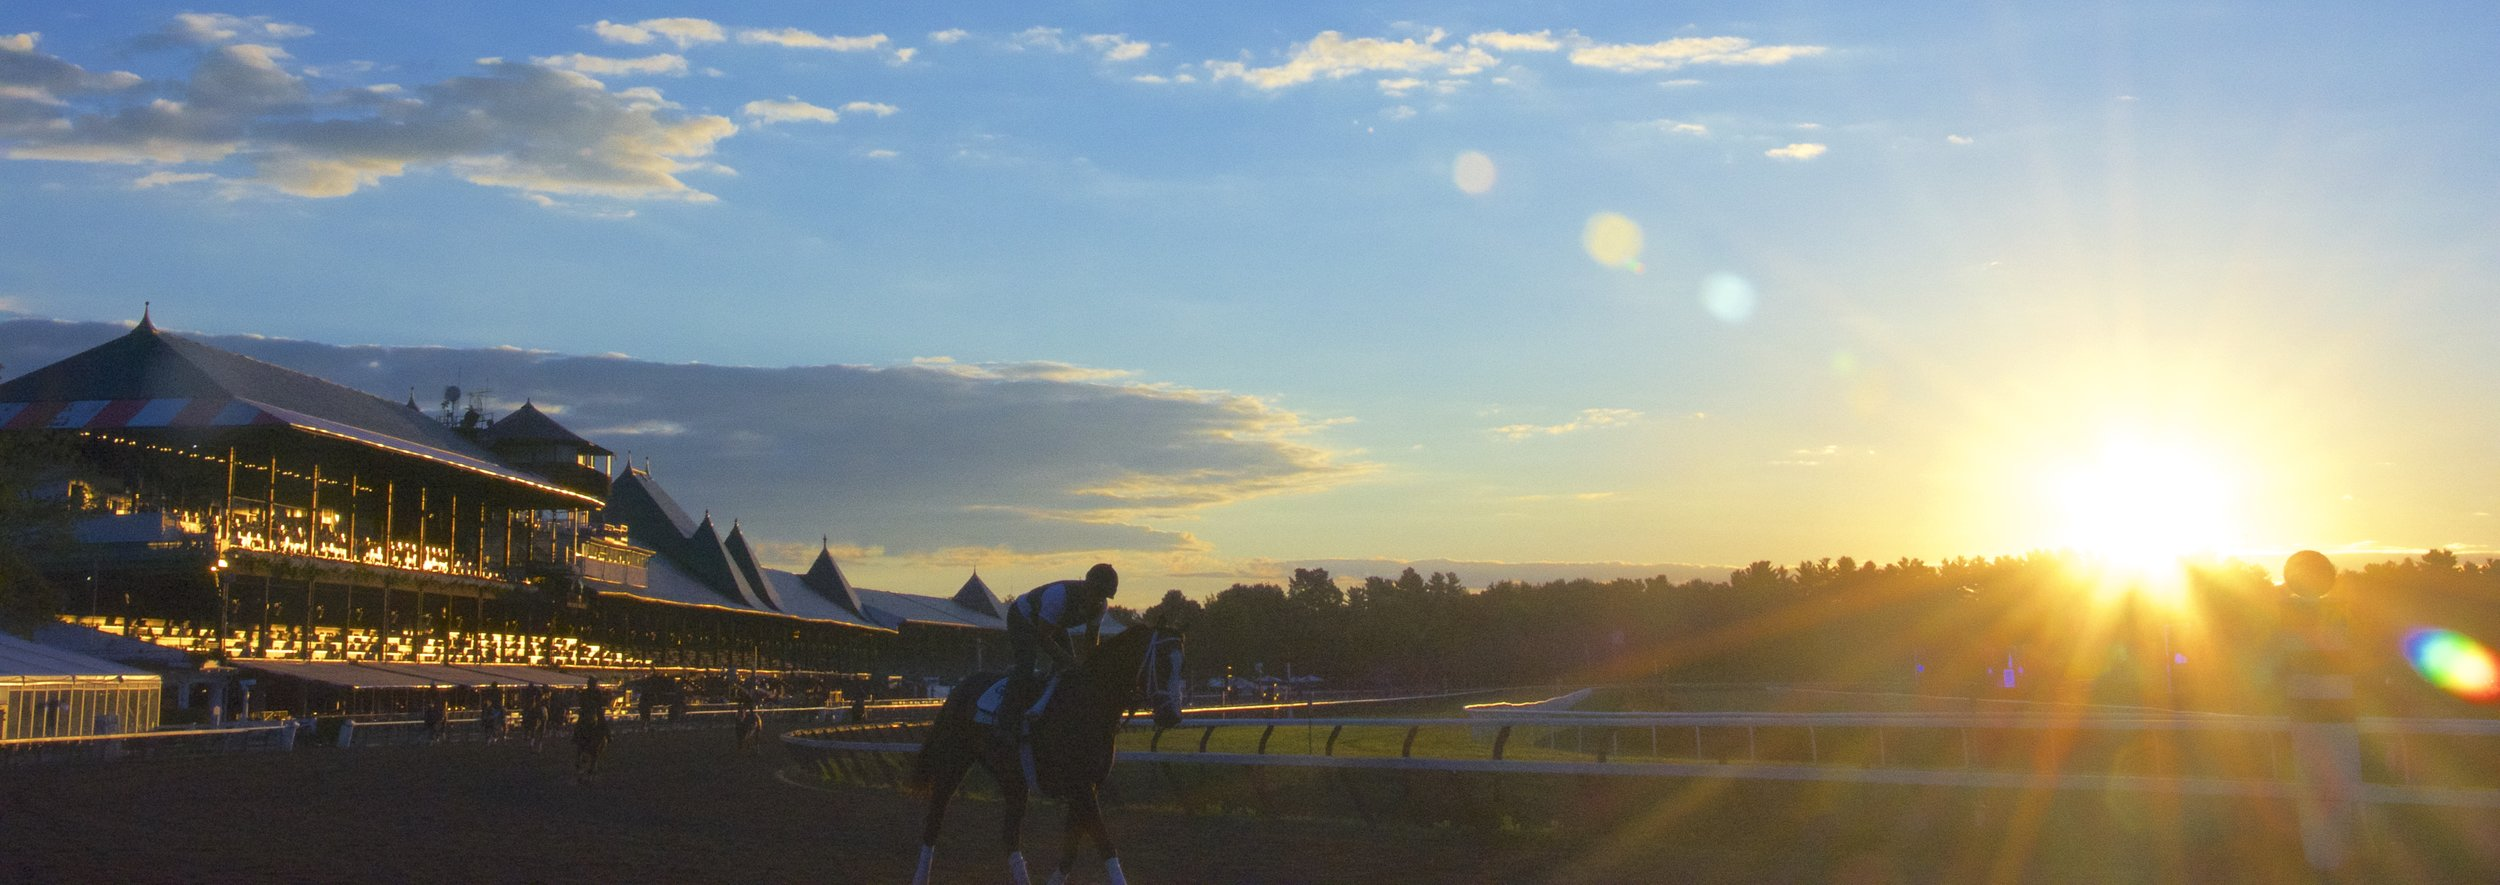 Saratoga Race Course in the morning.